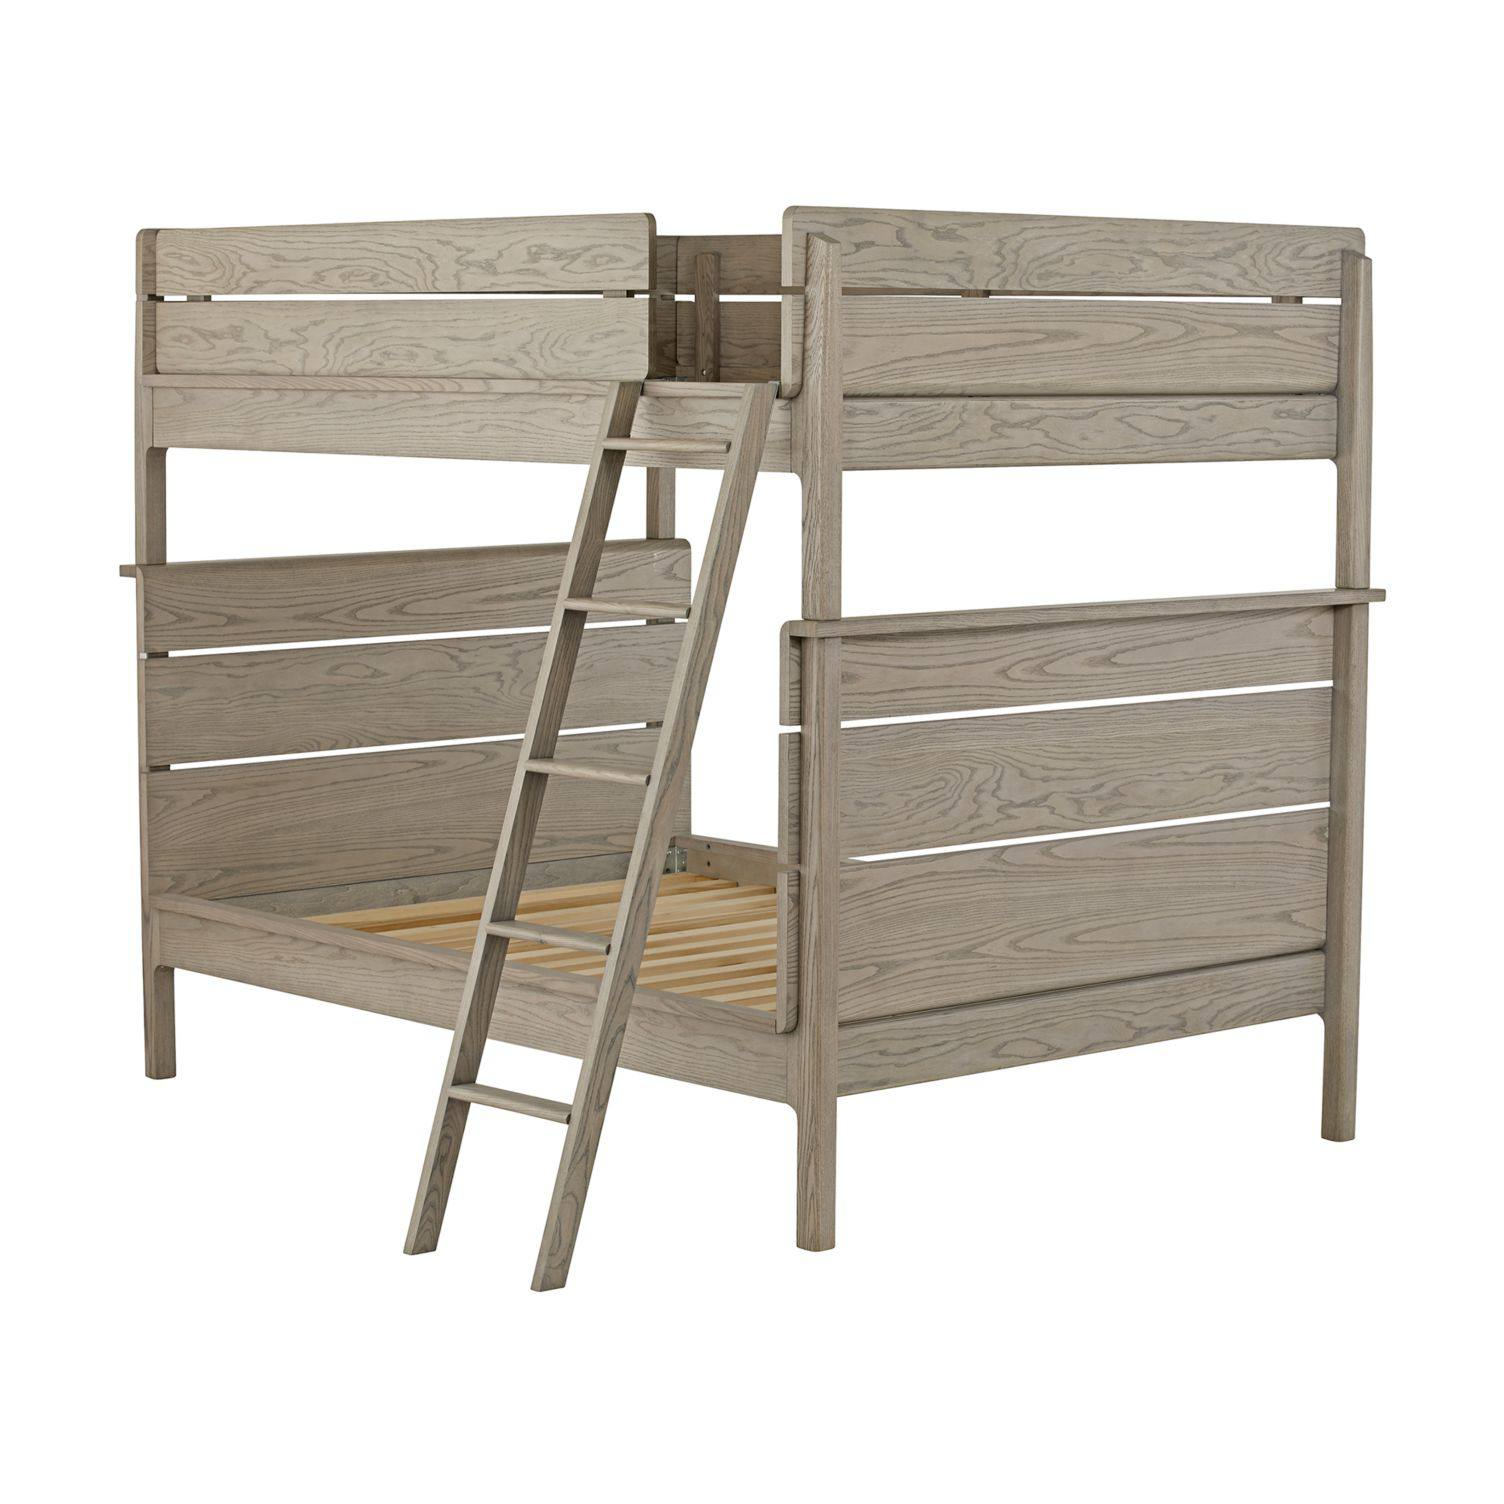 Wrightwood Grey Stain Full-Over-Full Bunk Bed